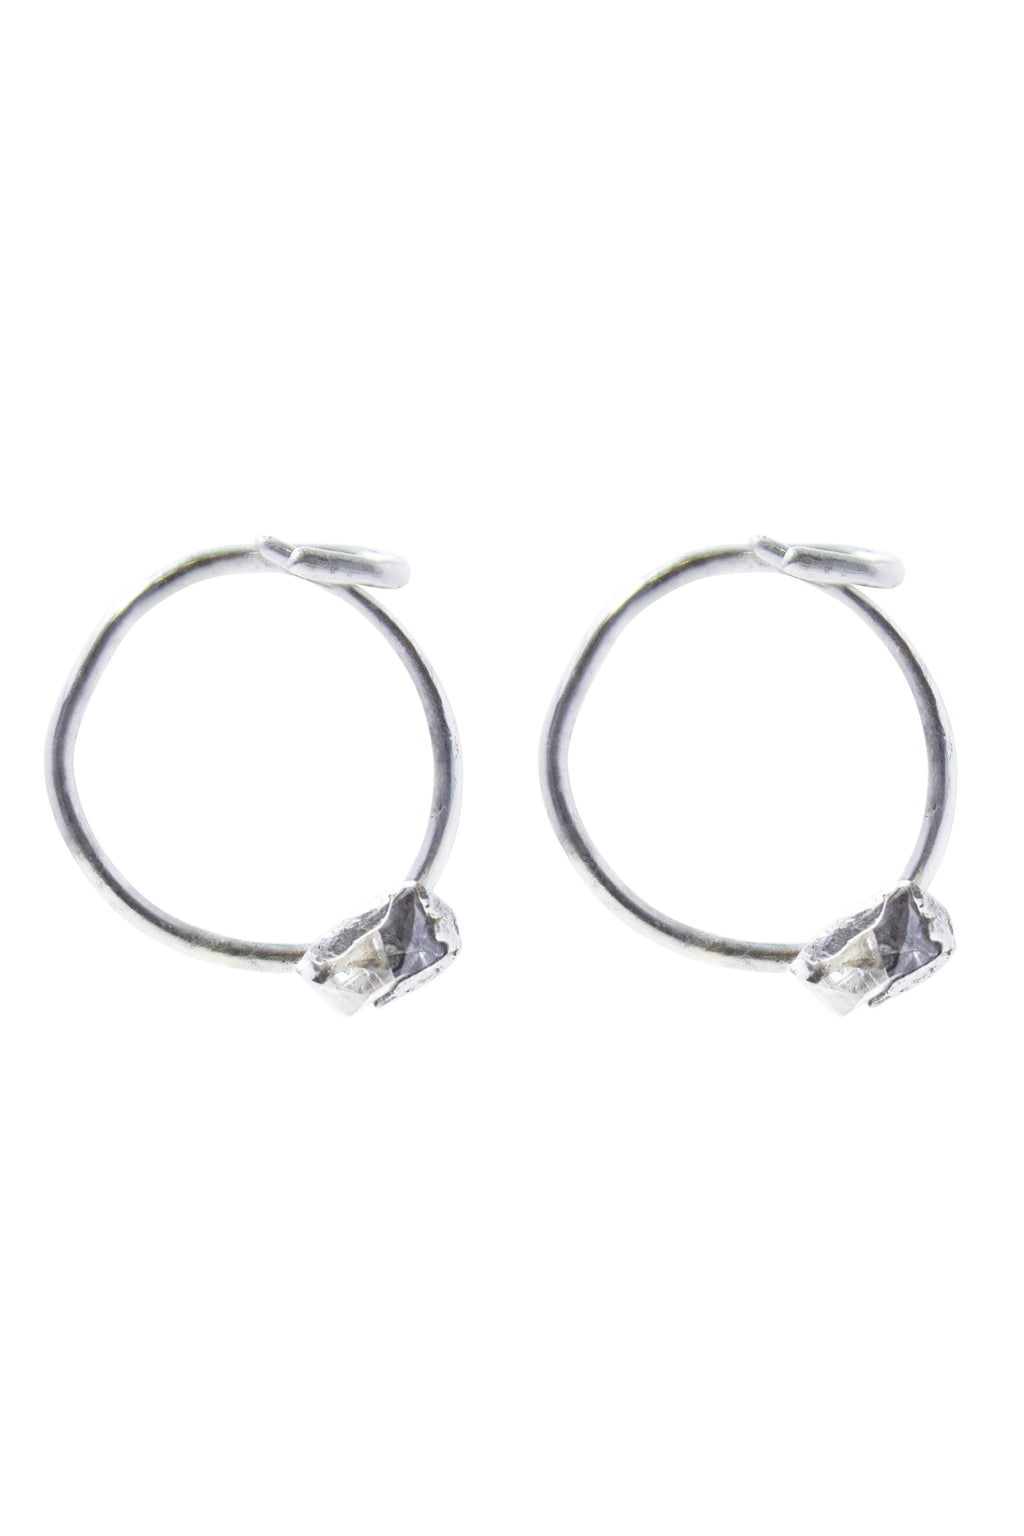 Buried Sapphire Hoop Earrings-II